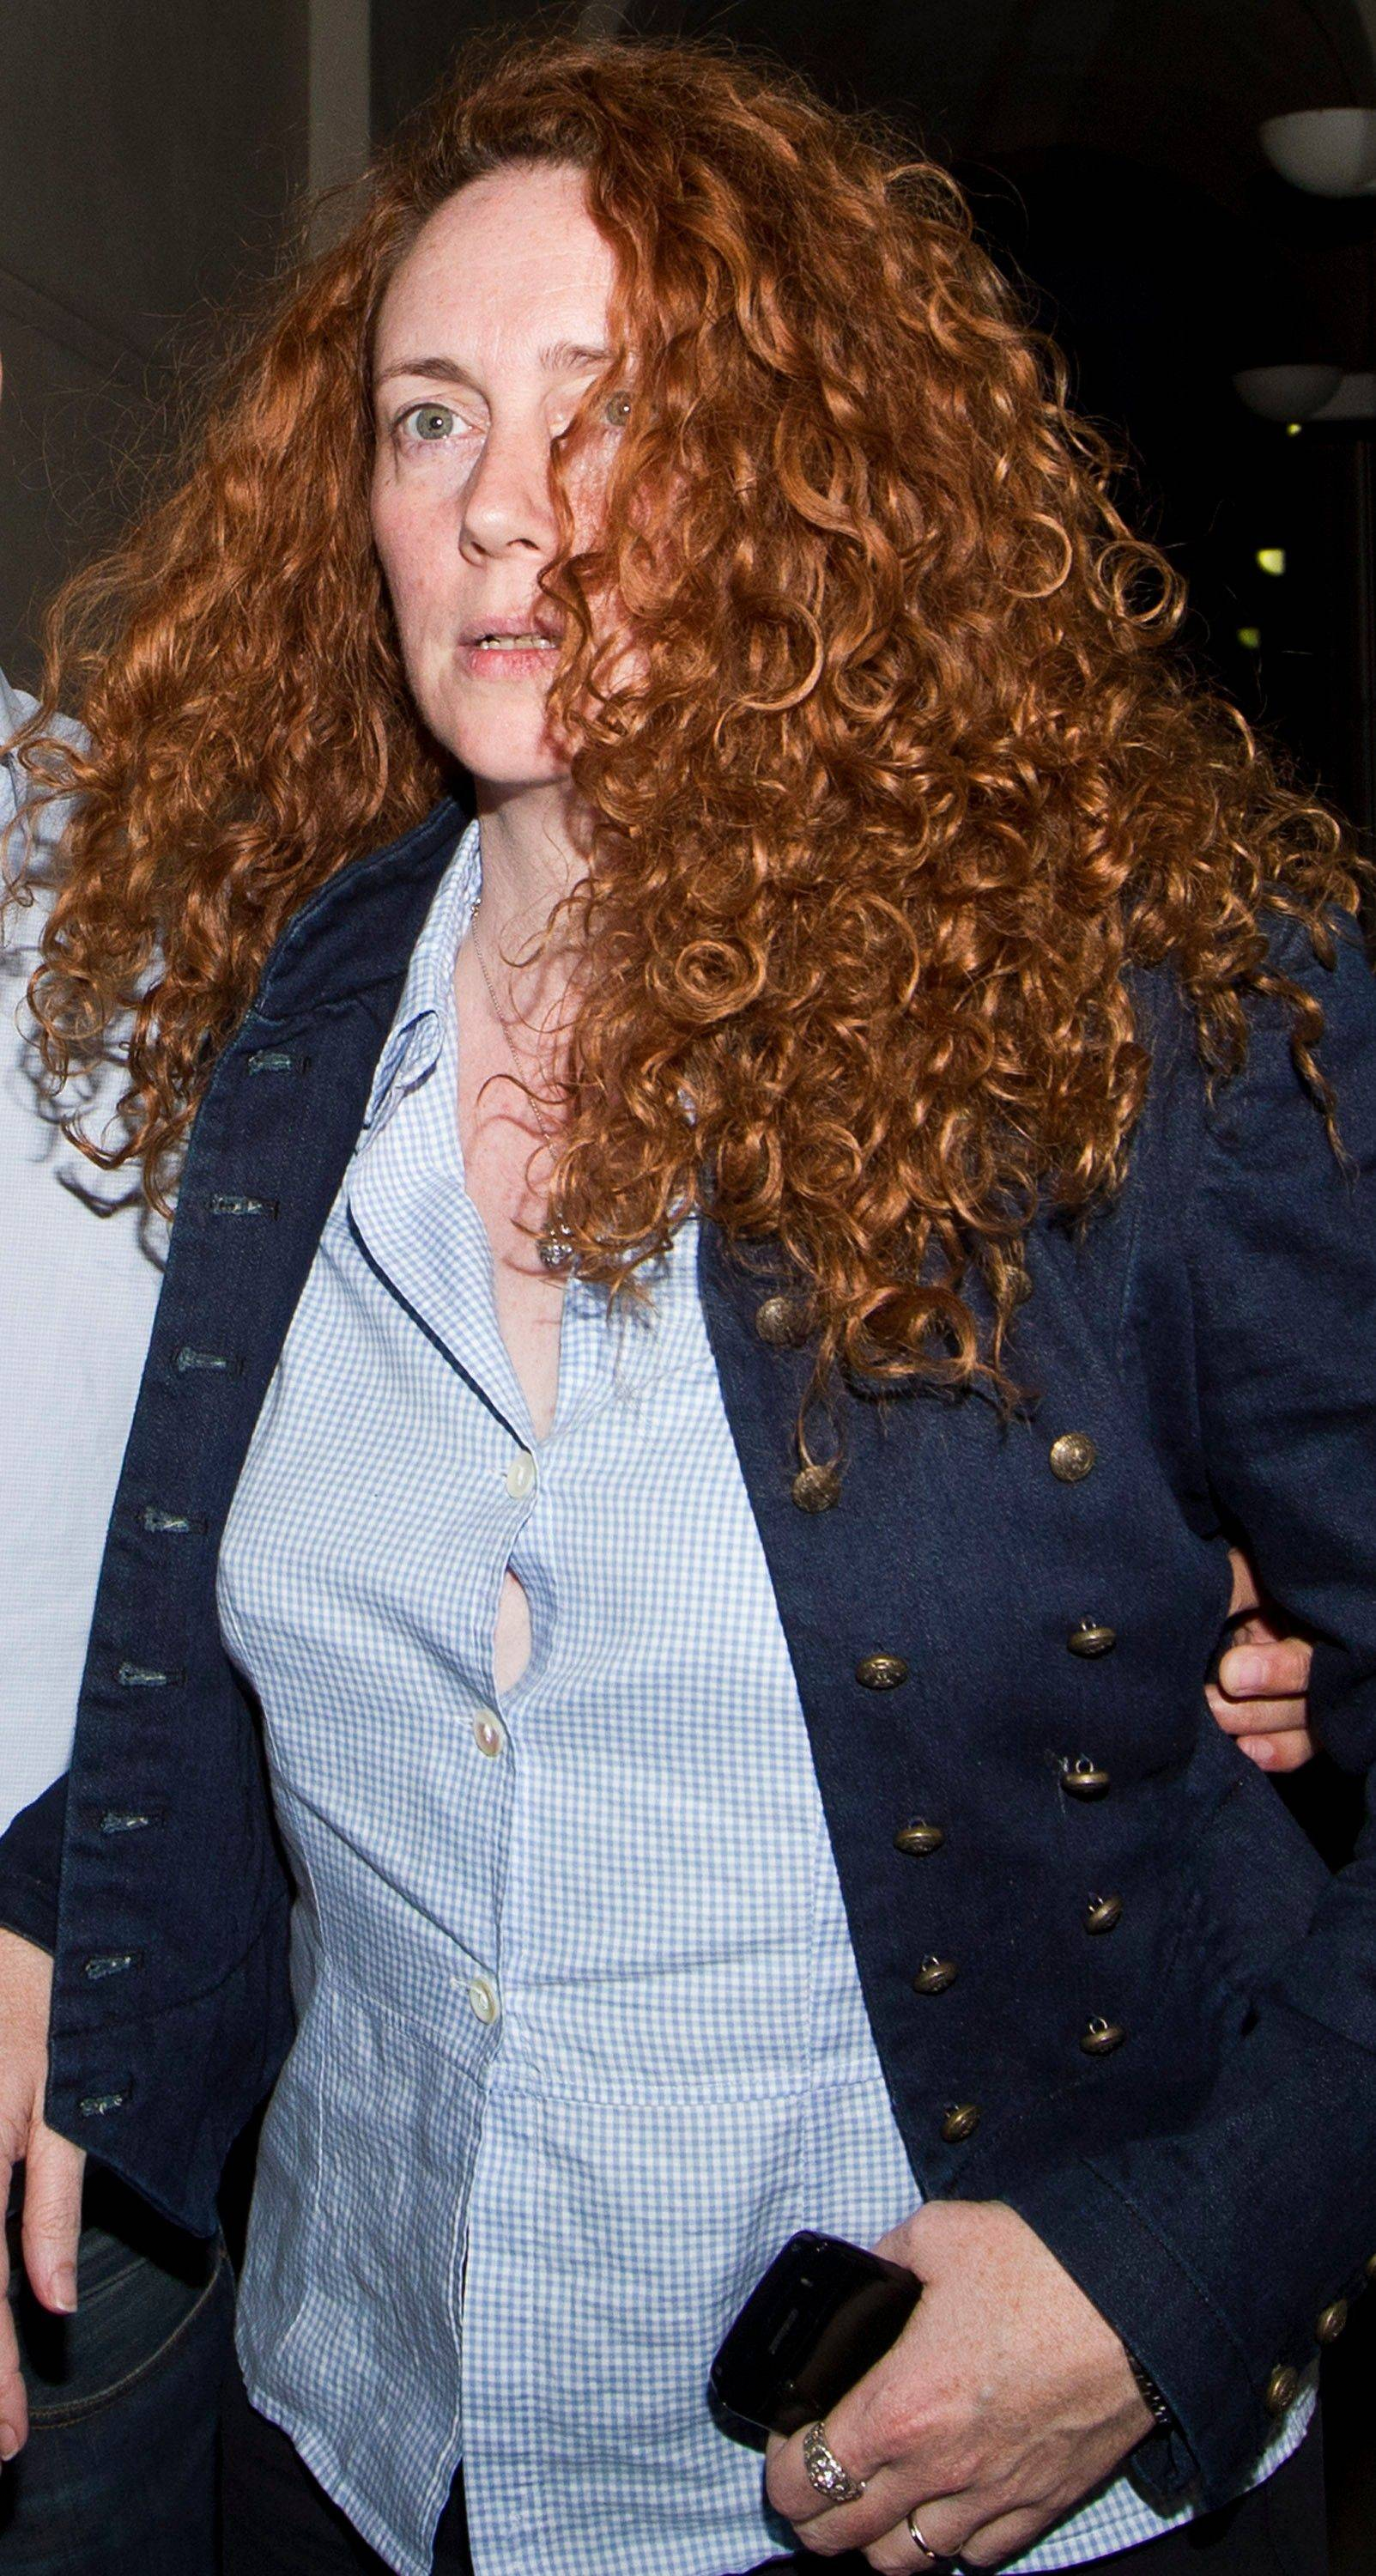 Sky television sources reported on Sunday that former Chief executive of News International, Rebekah Brooks had been arrested by police investigating a phone hacking and corruption scandal that has engulfed Rupert Murdoch's British media company. Scotland Yard confirmed that a 43 year old woman had been arrested.